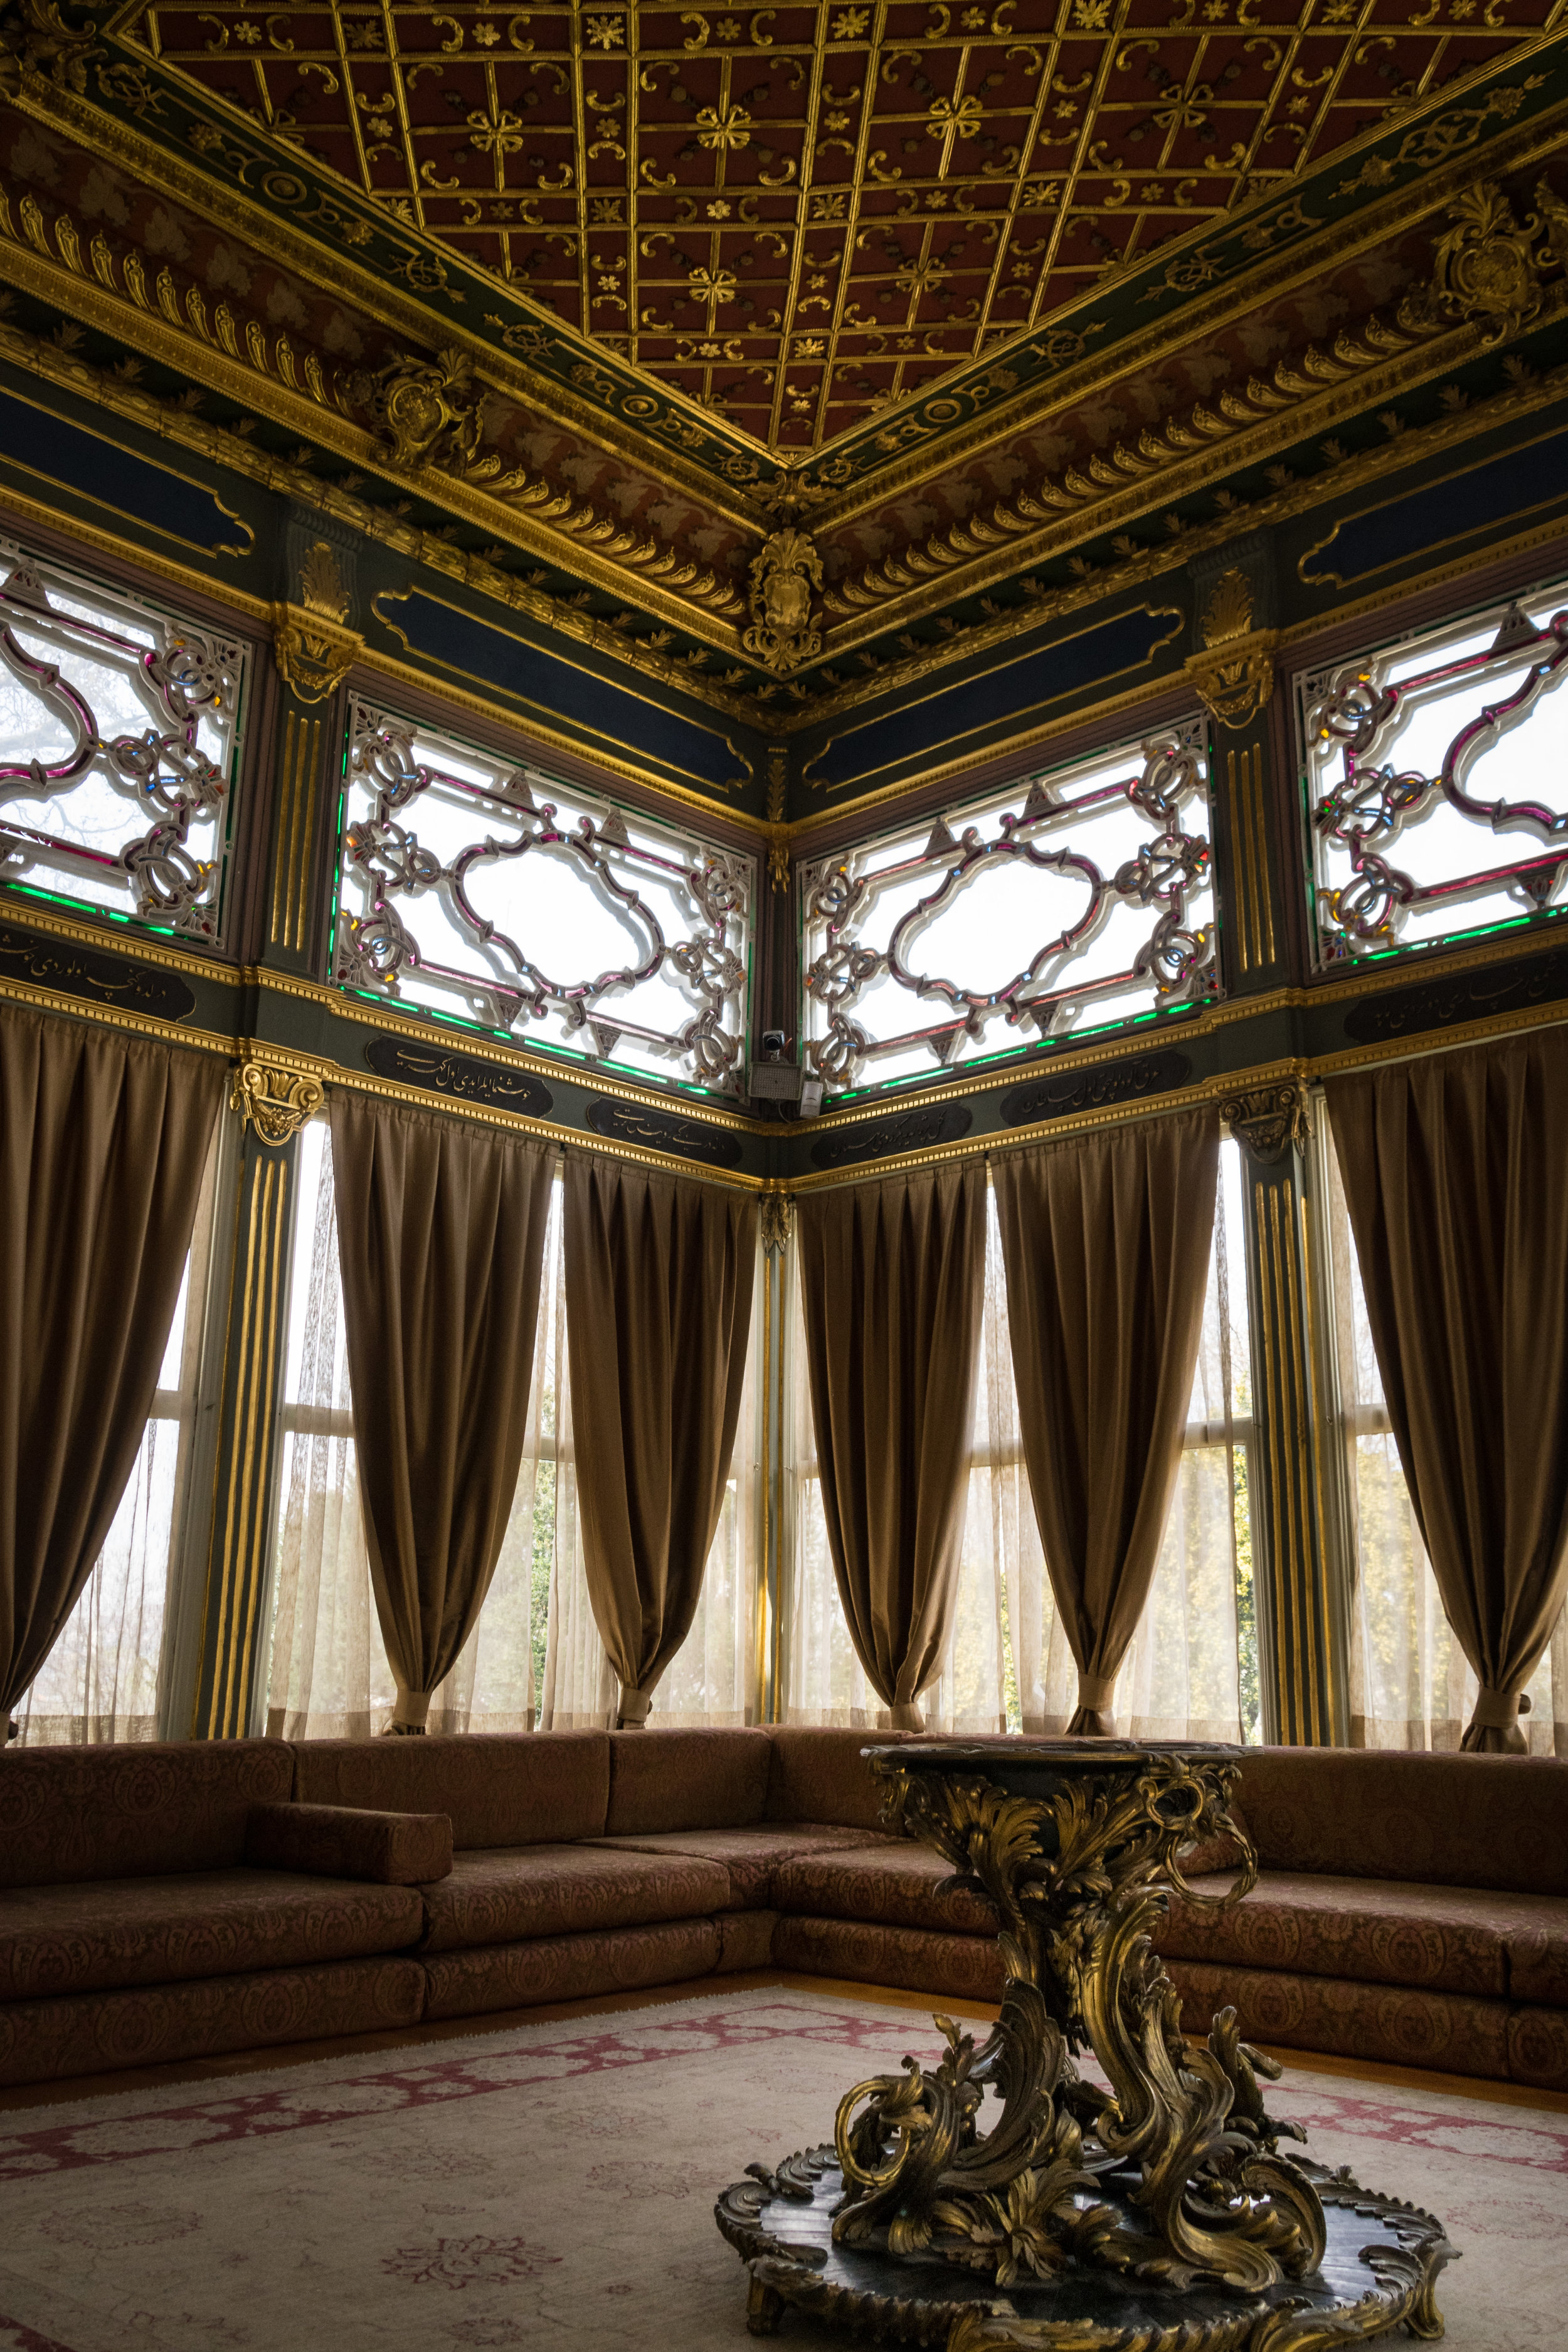 pavilion interior, where sultans watched sporting events